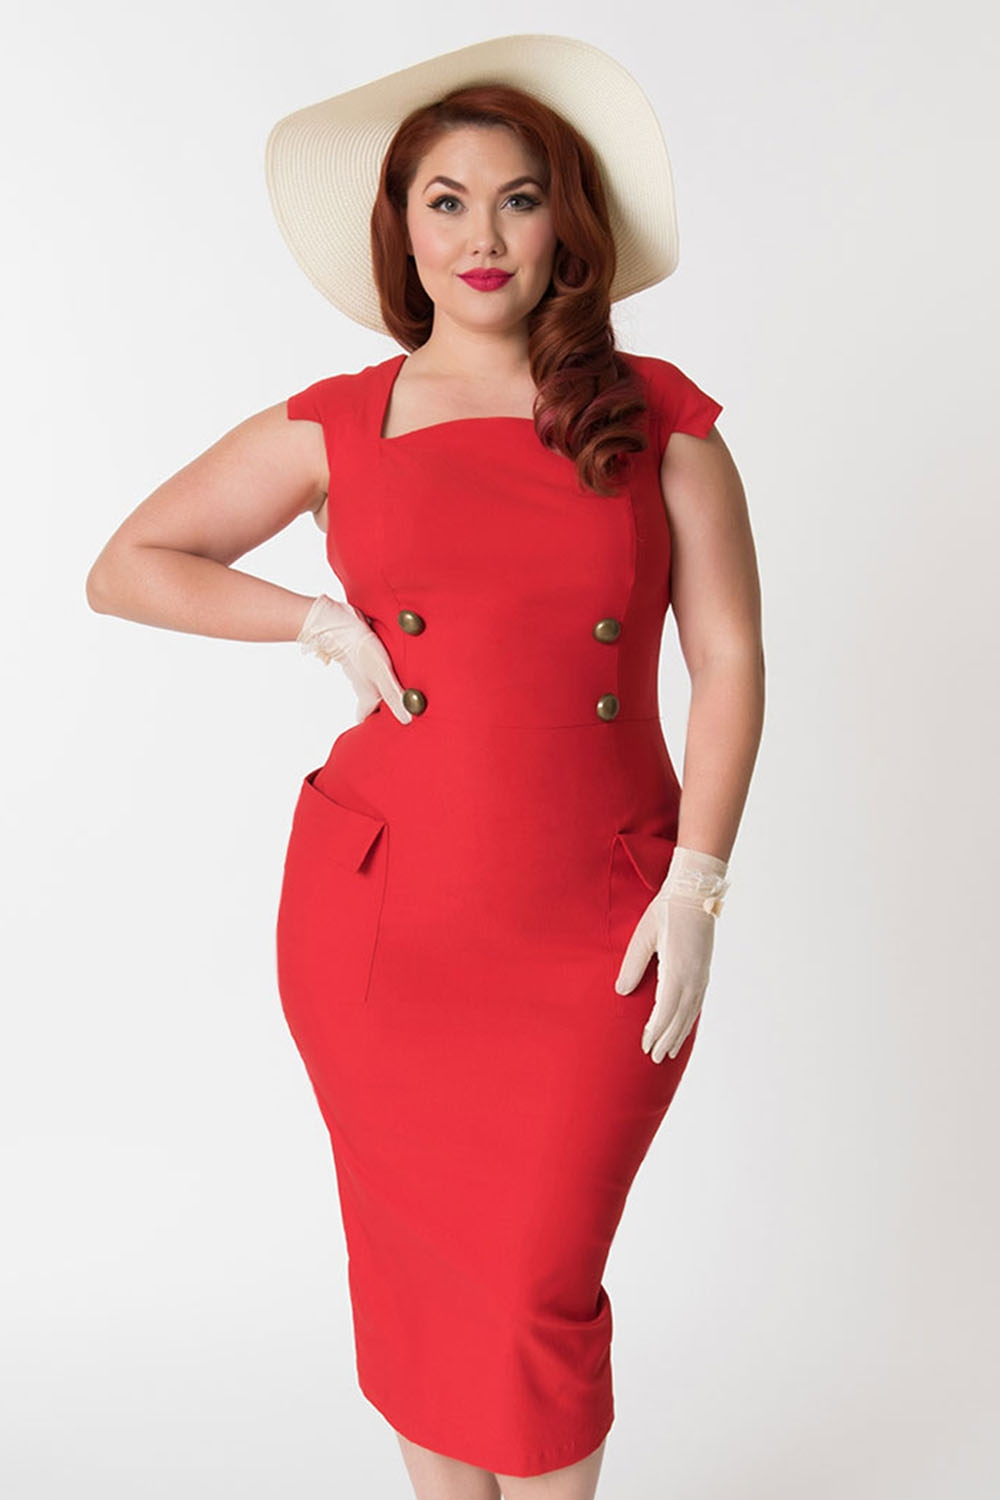 Plus Size Retro Dresses Uk